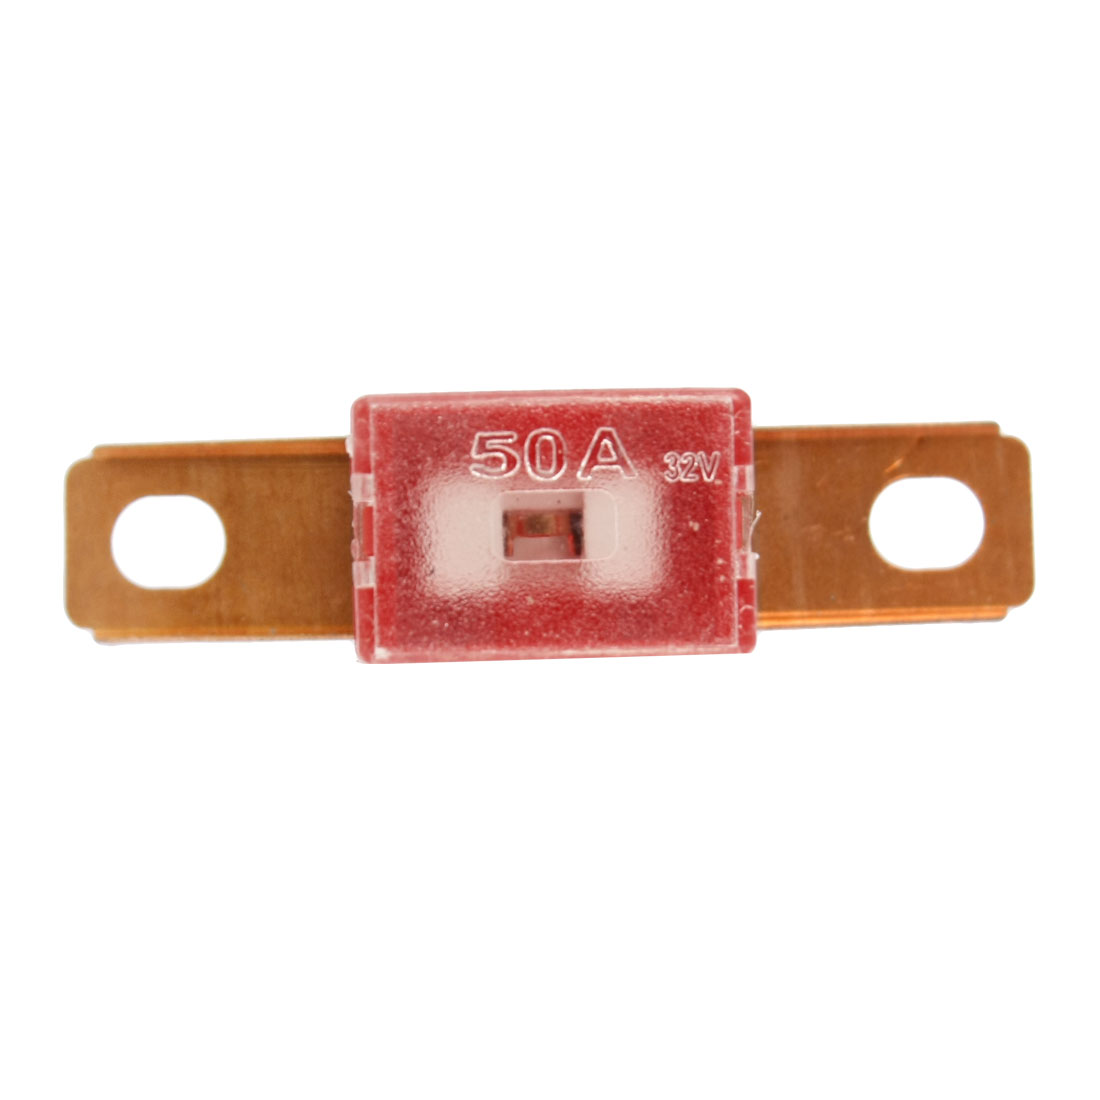 50A Slow Blow Bent Male Auto Link PAL Fuse Red